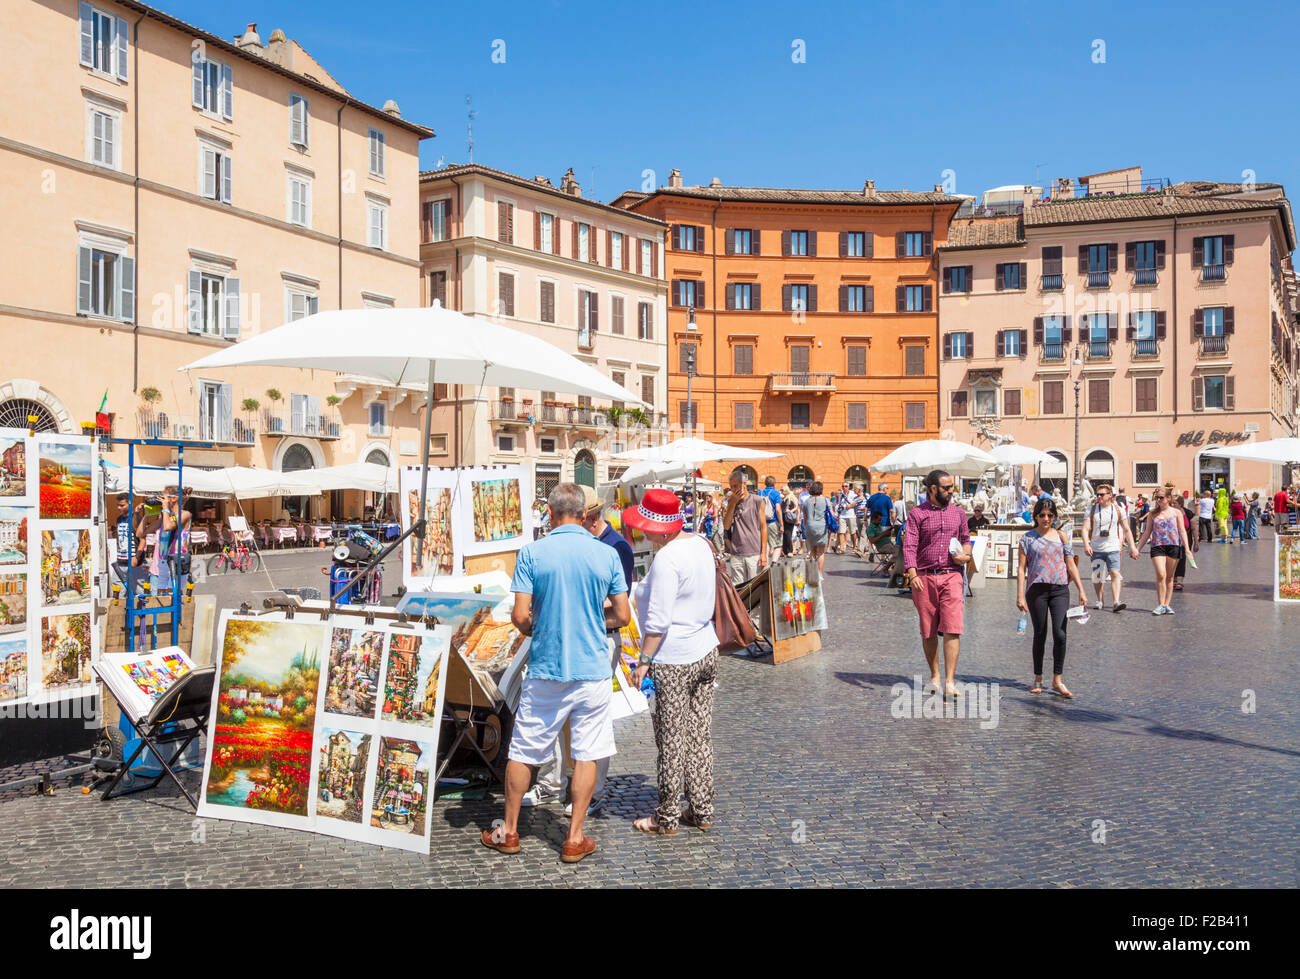 Artists painting and selling artwork in the Piazza Navona Rome italy Roma lazio italy eu europe - Stock Image